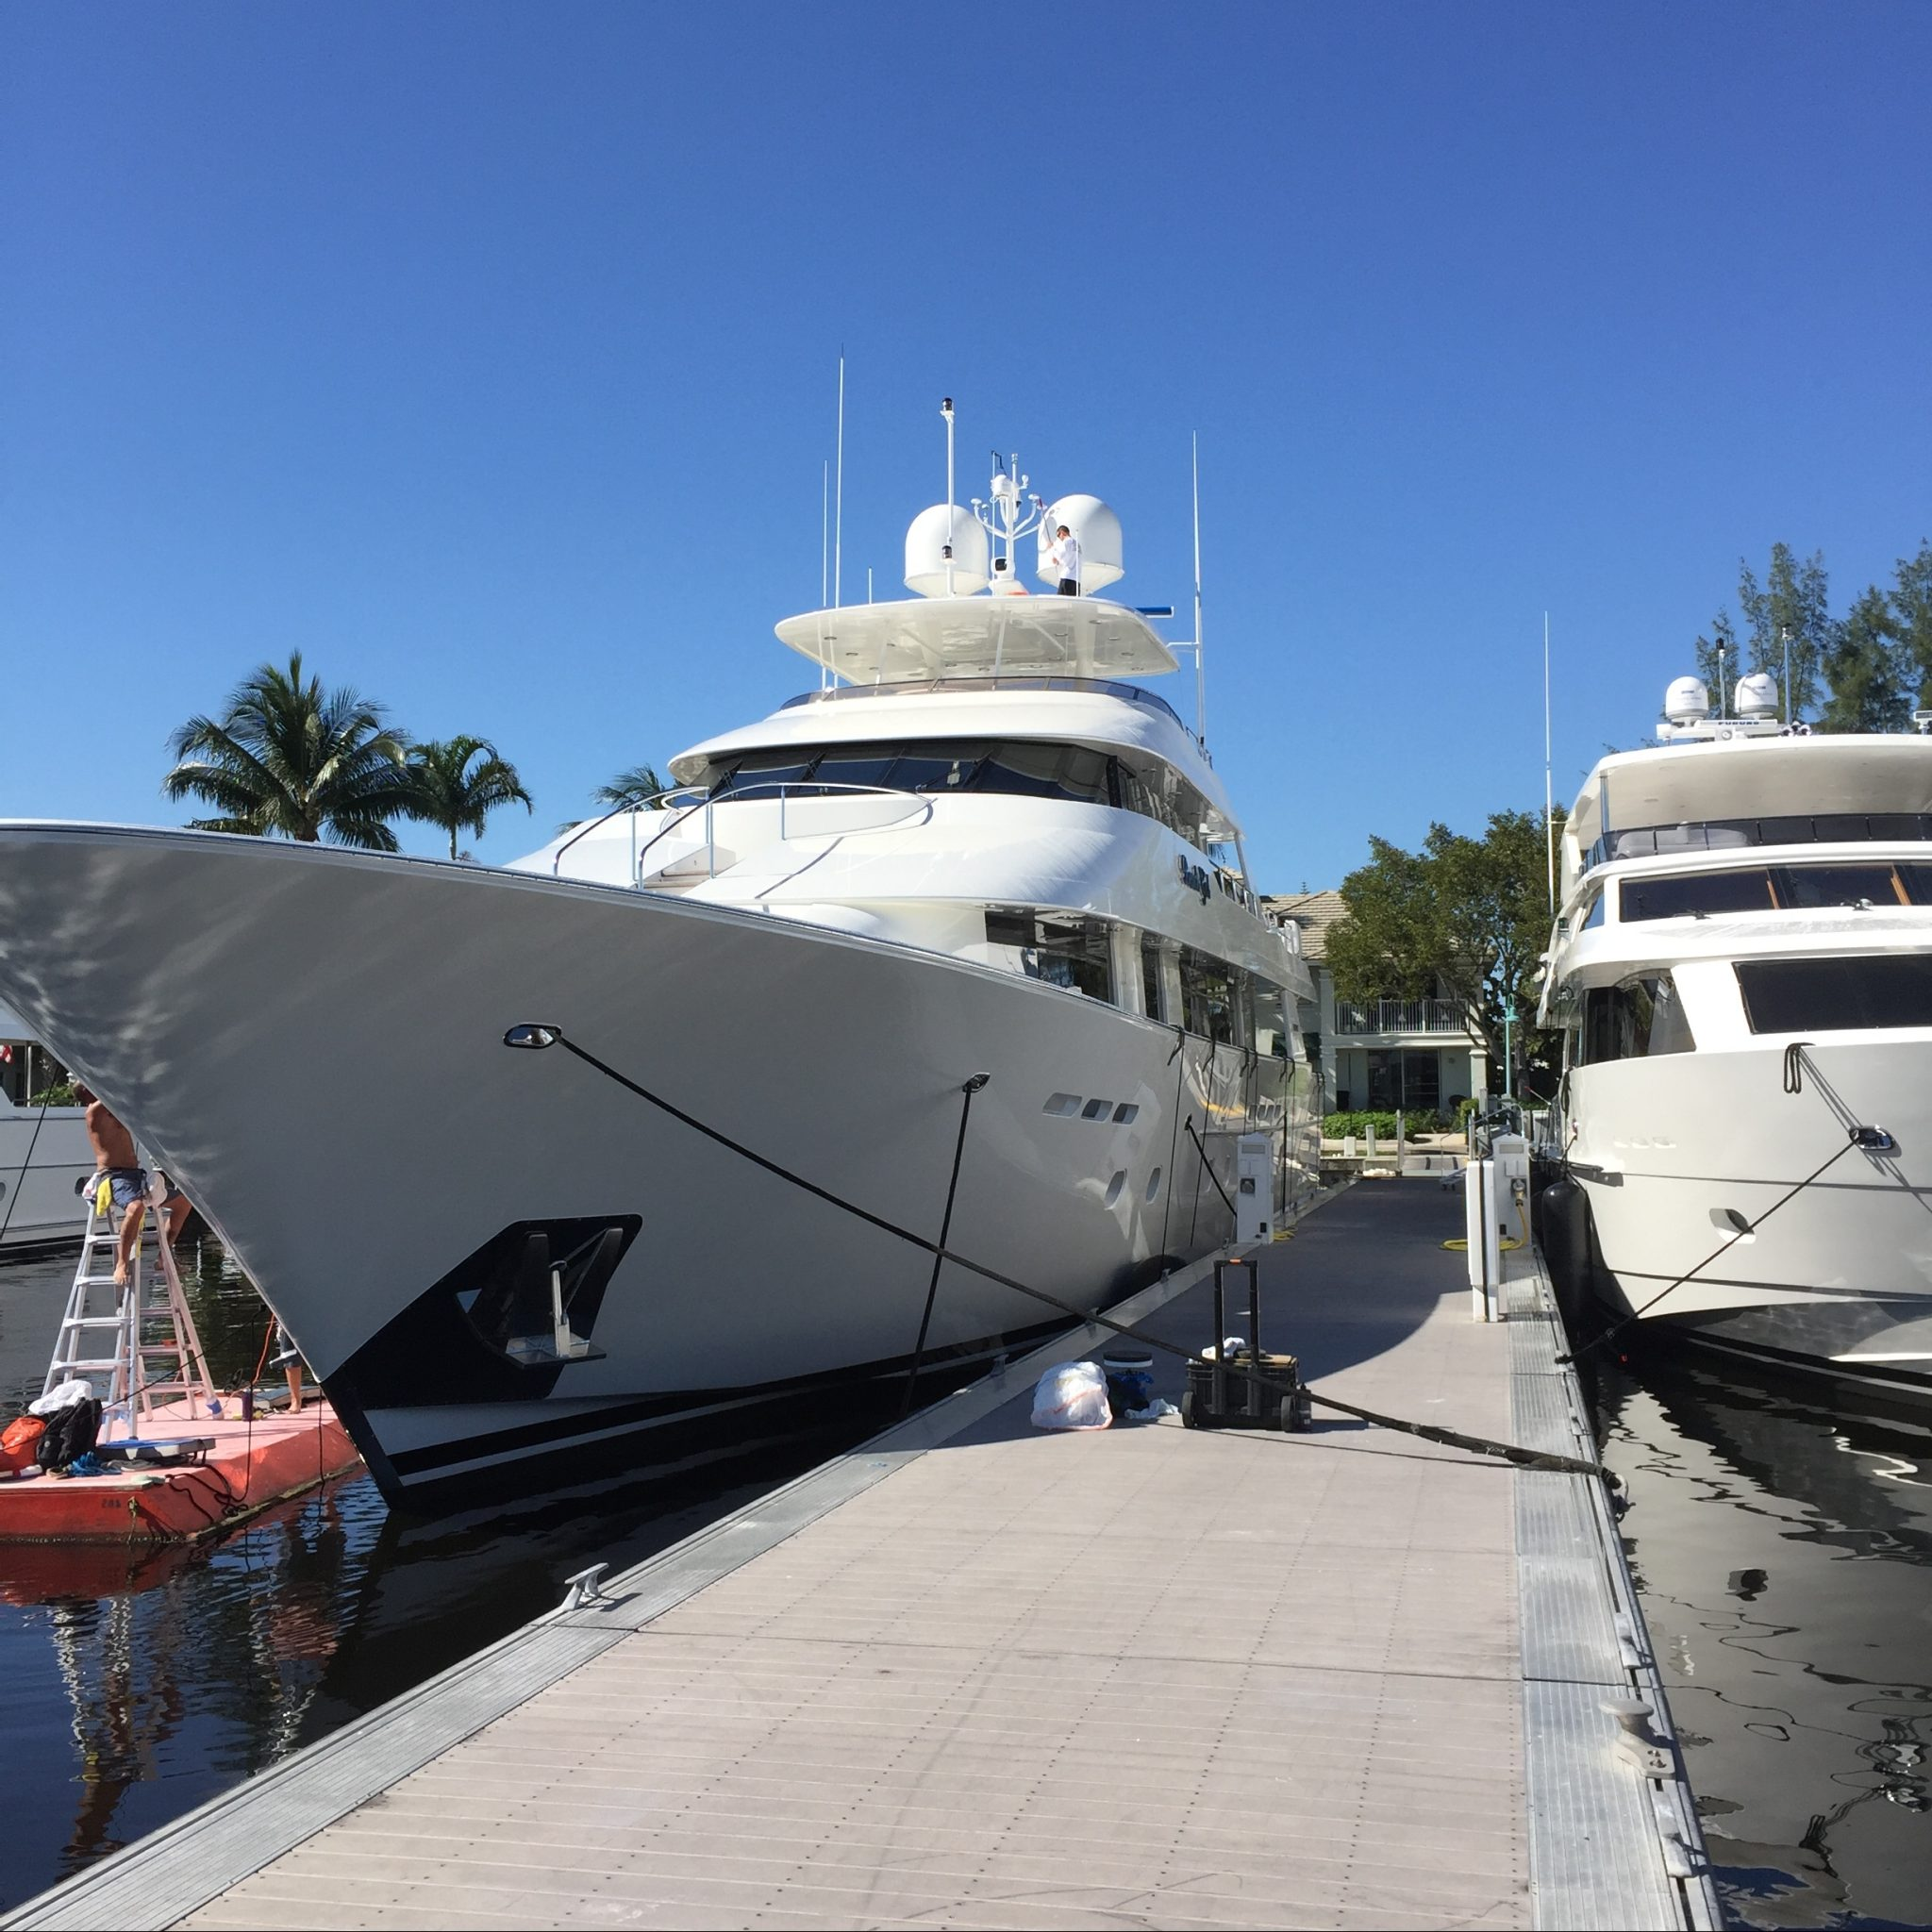 MARINA 110' WEST DOCK 4